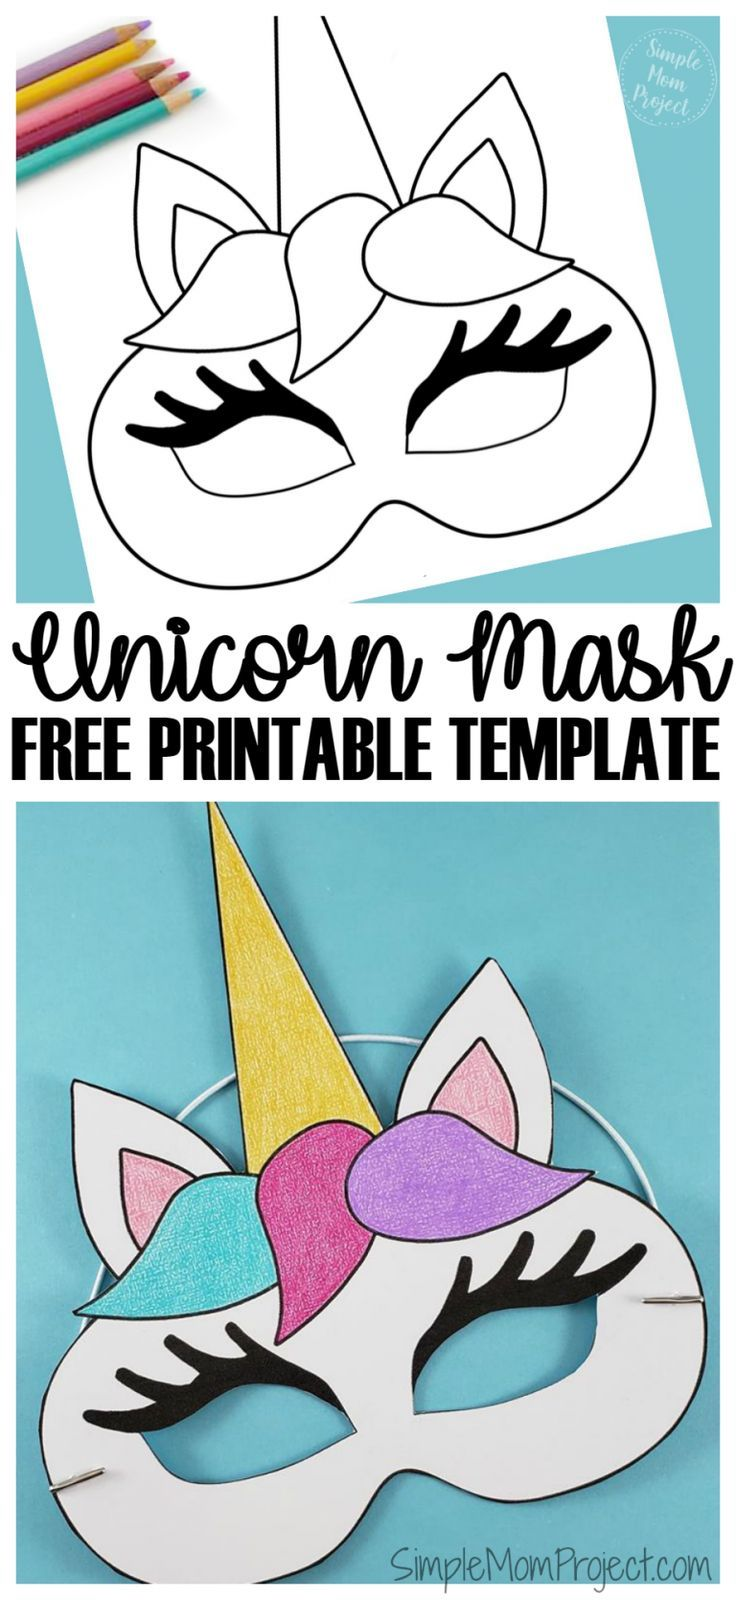 Unicorn Face Masks with FREE Printable Templates